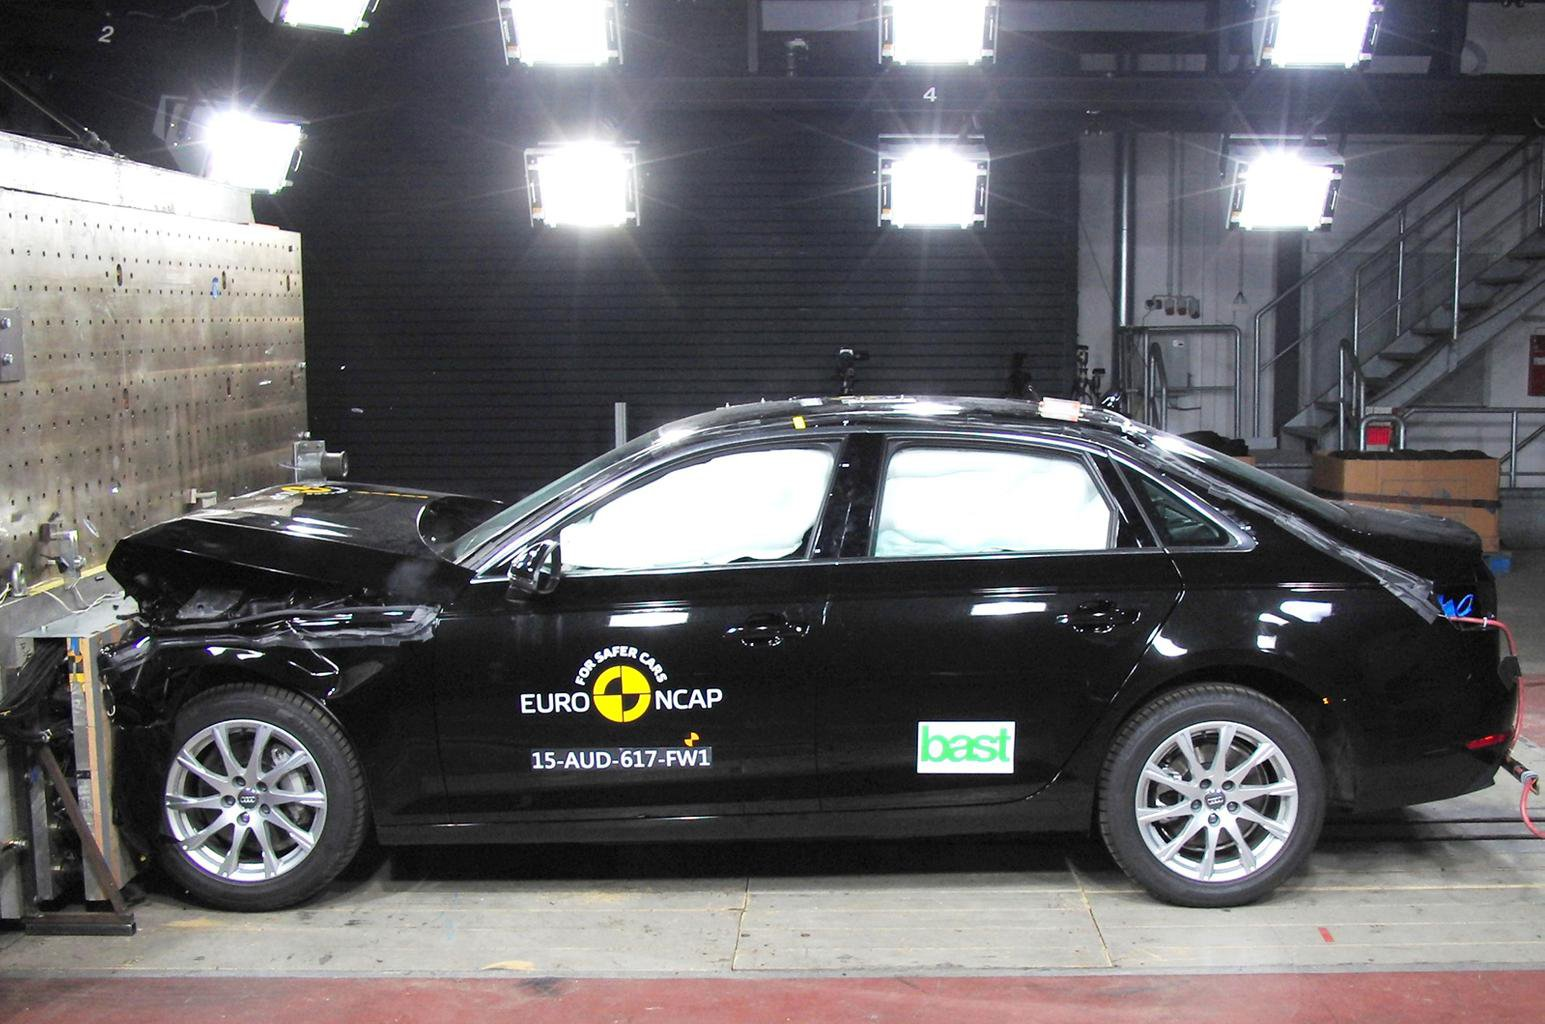 Audi A4, Honda HR-V and Honda Jazz score top marks on Euro NCAP tests